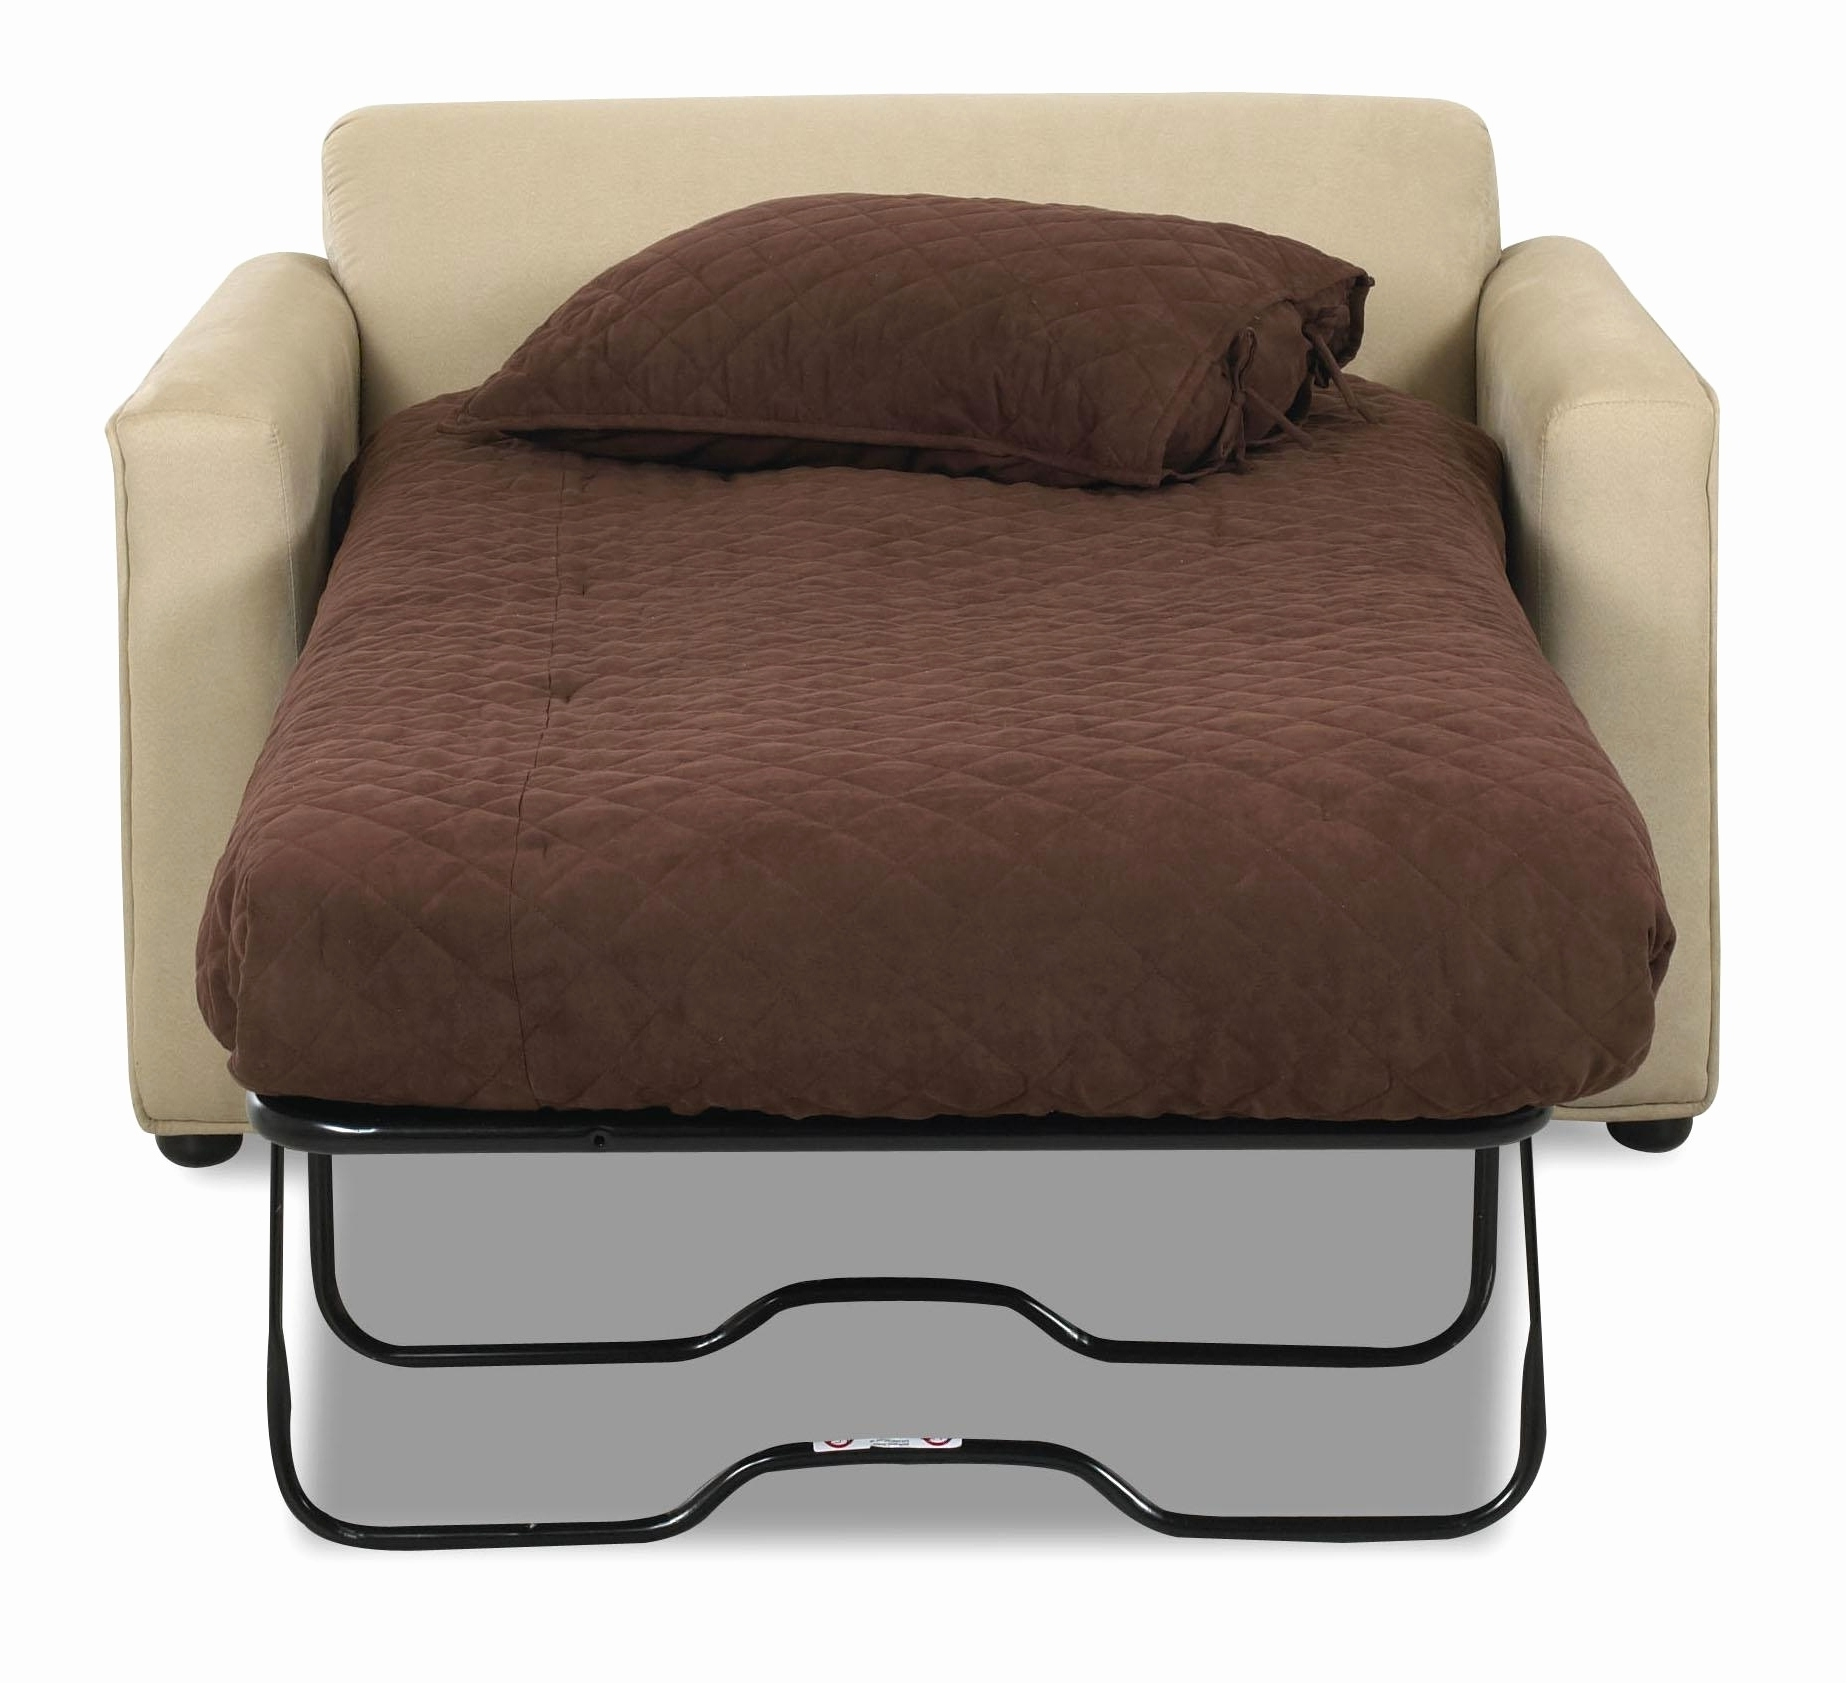 Beautiful Fold Out Twin Bed Chair Best Of – Inmunoanalisis Throughout Well Known Fold Up Sofa Chairs (View 2 of 20)